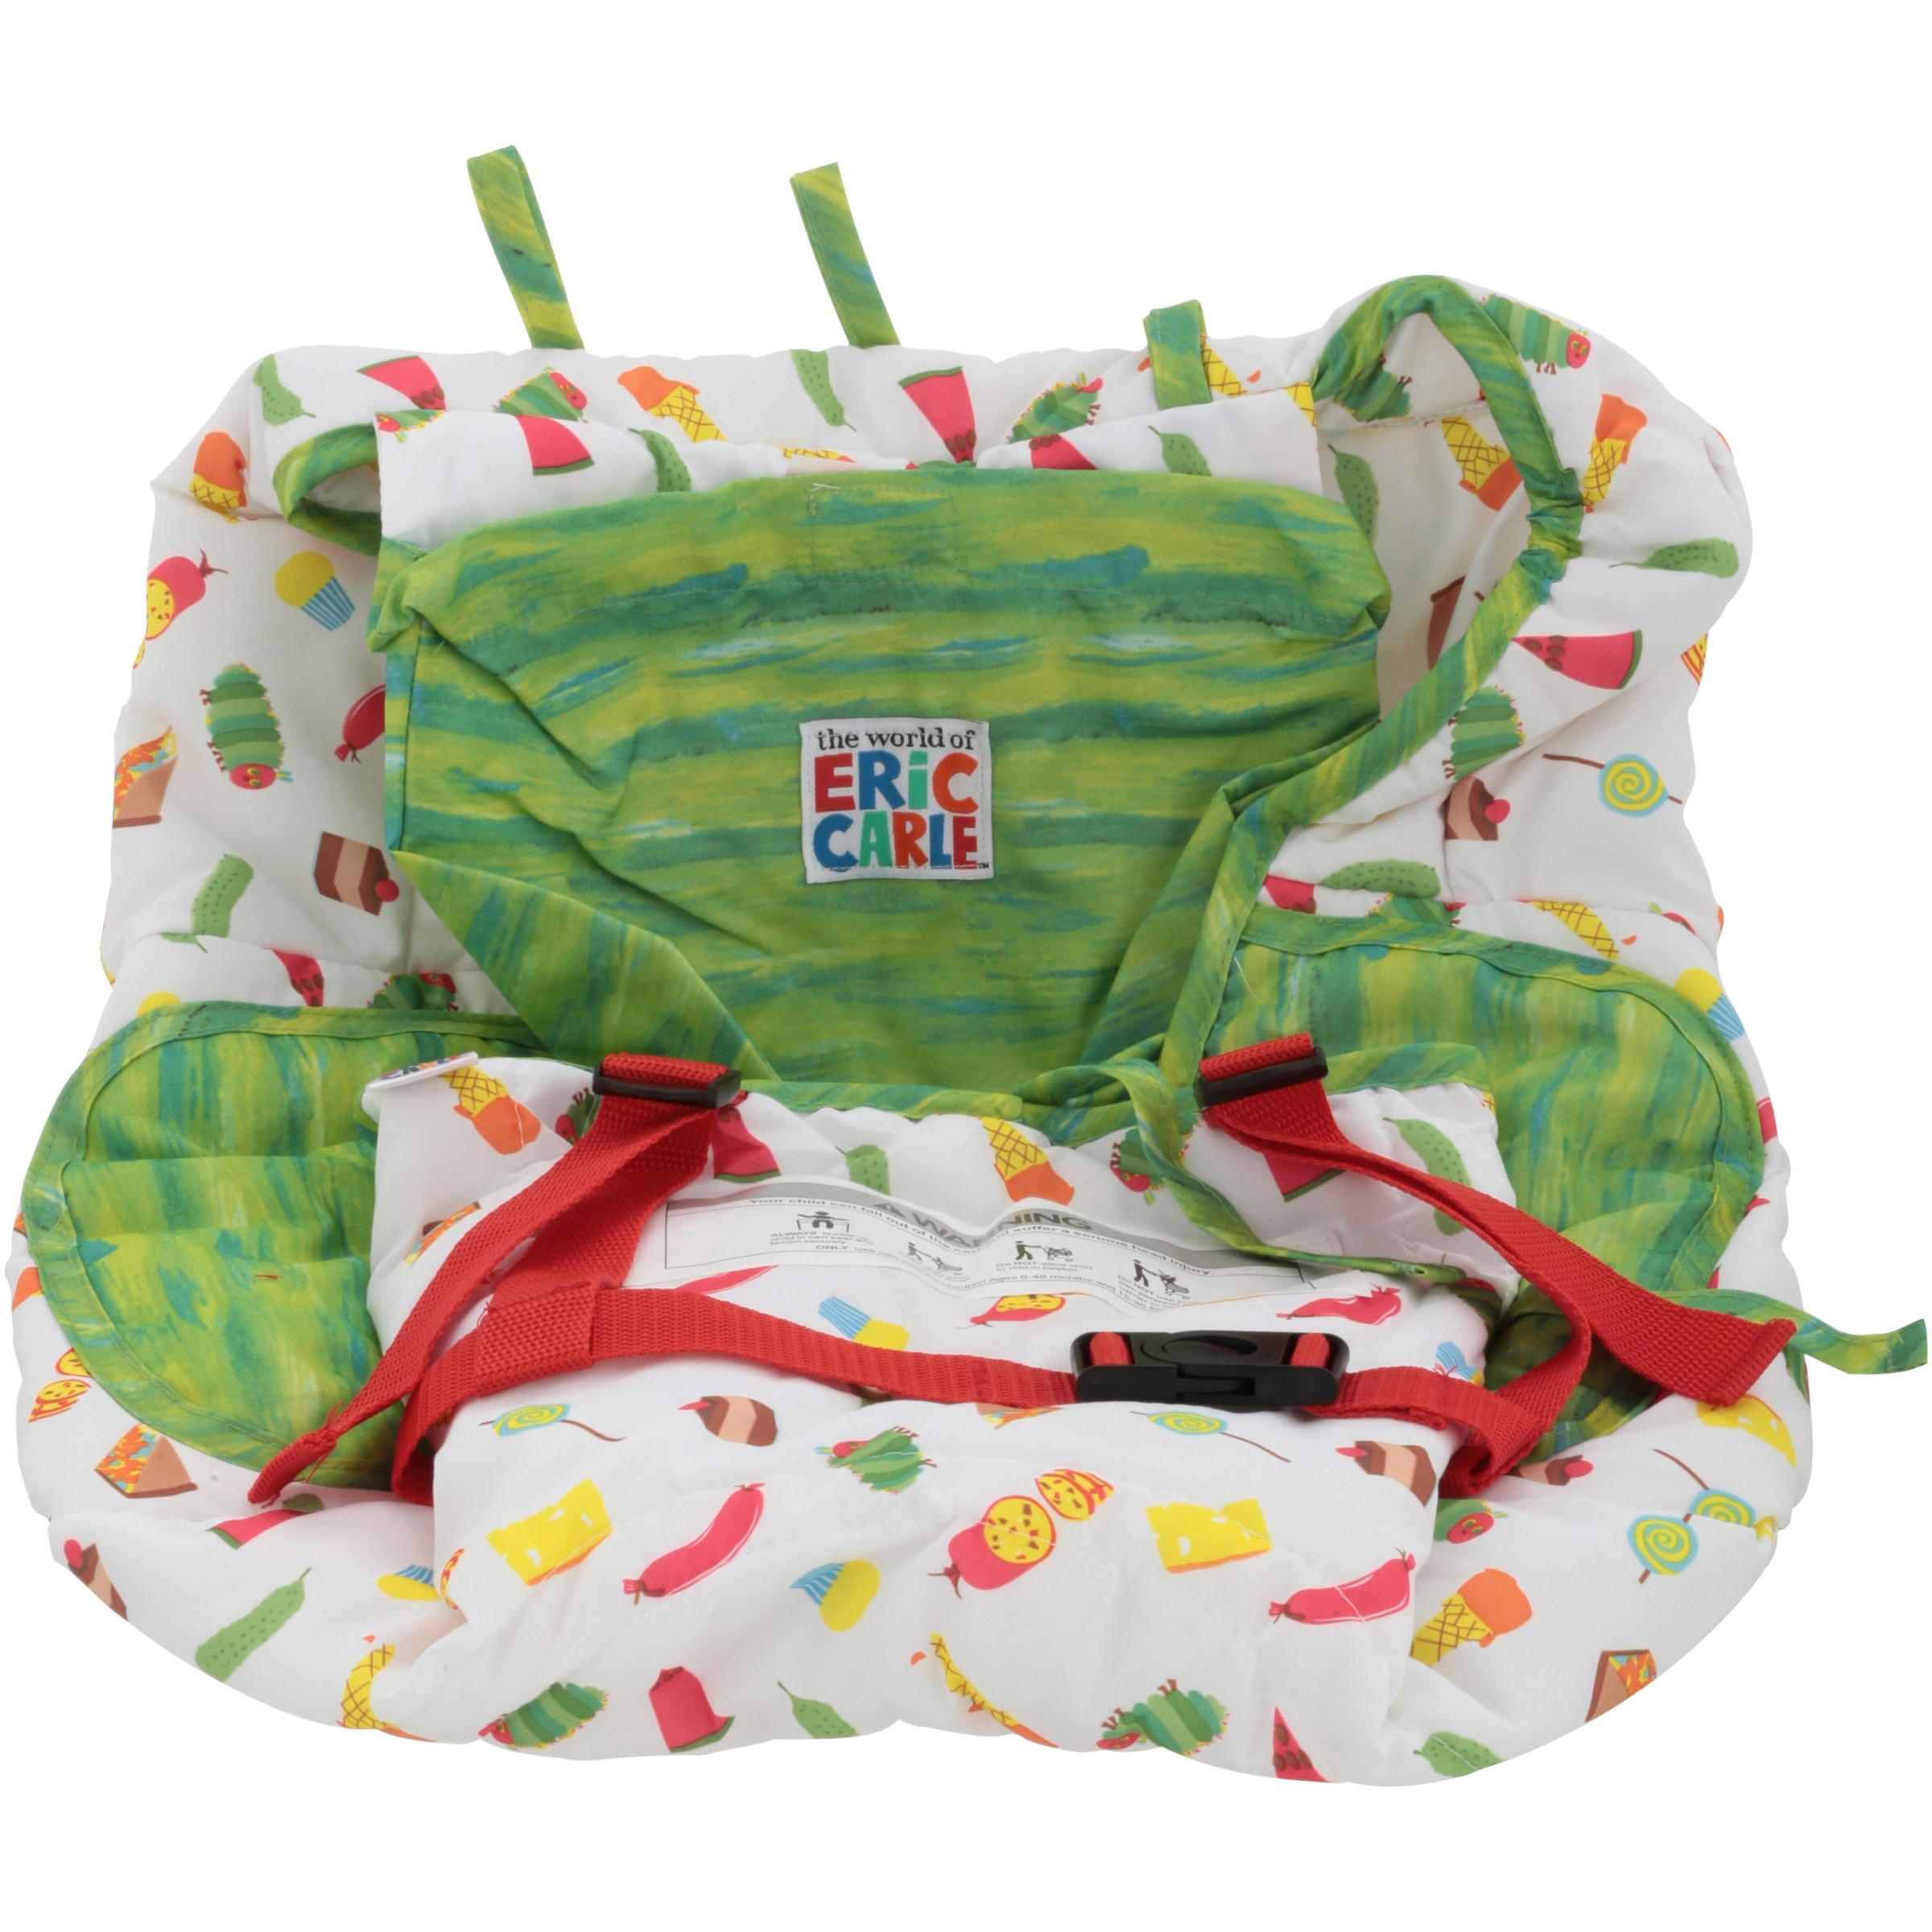 The World of Eric Carle The Very Hungry Caterpillar Shopping Cart & High Chair Cover by Eric Carle